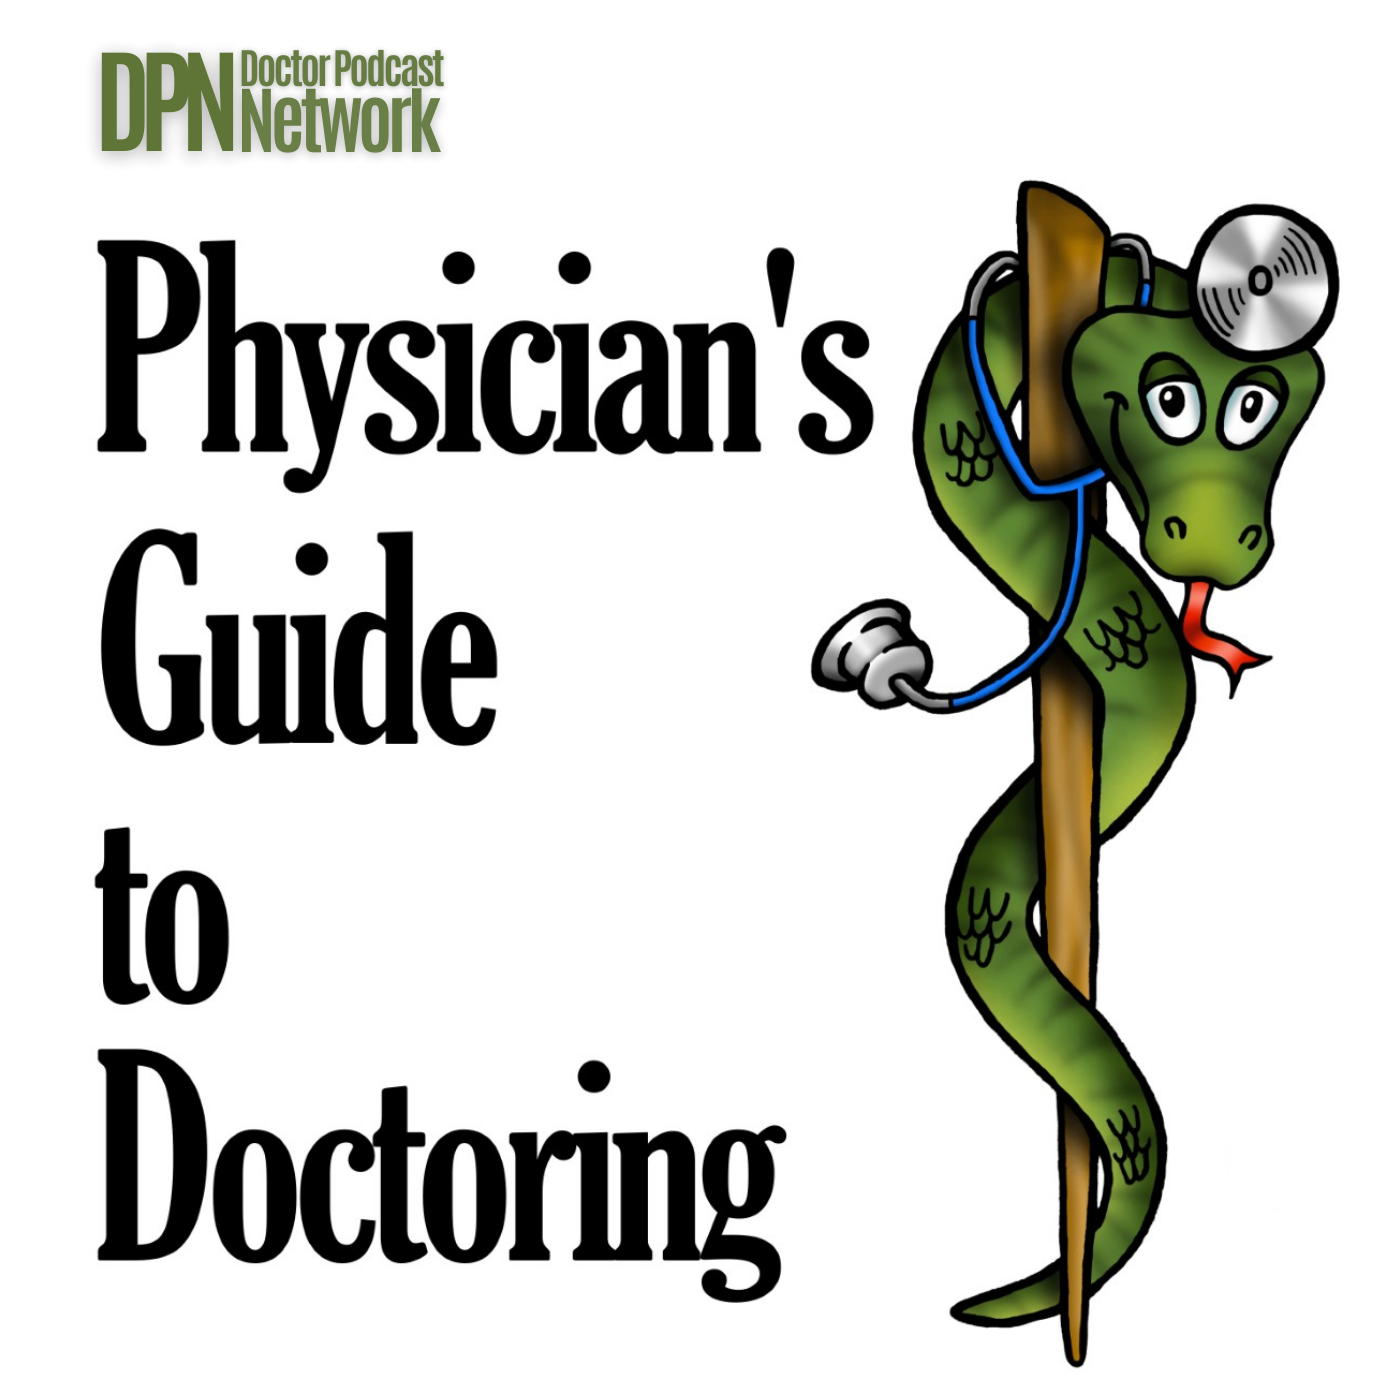 Physician's Guide to Doctoring with Bradley B. Block, MD show art